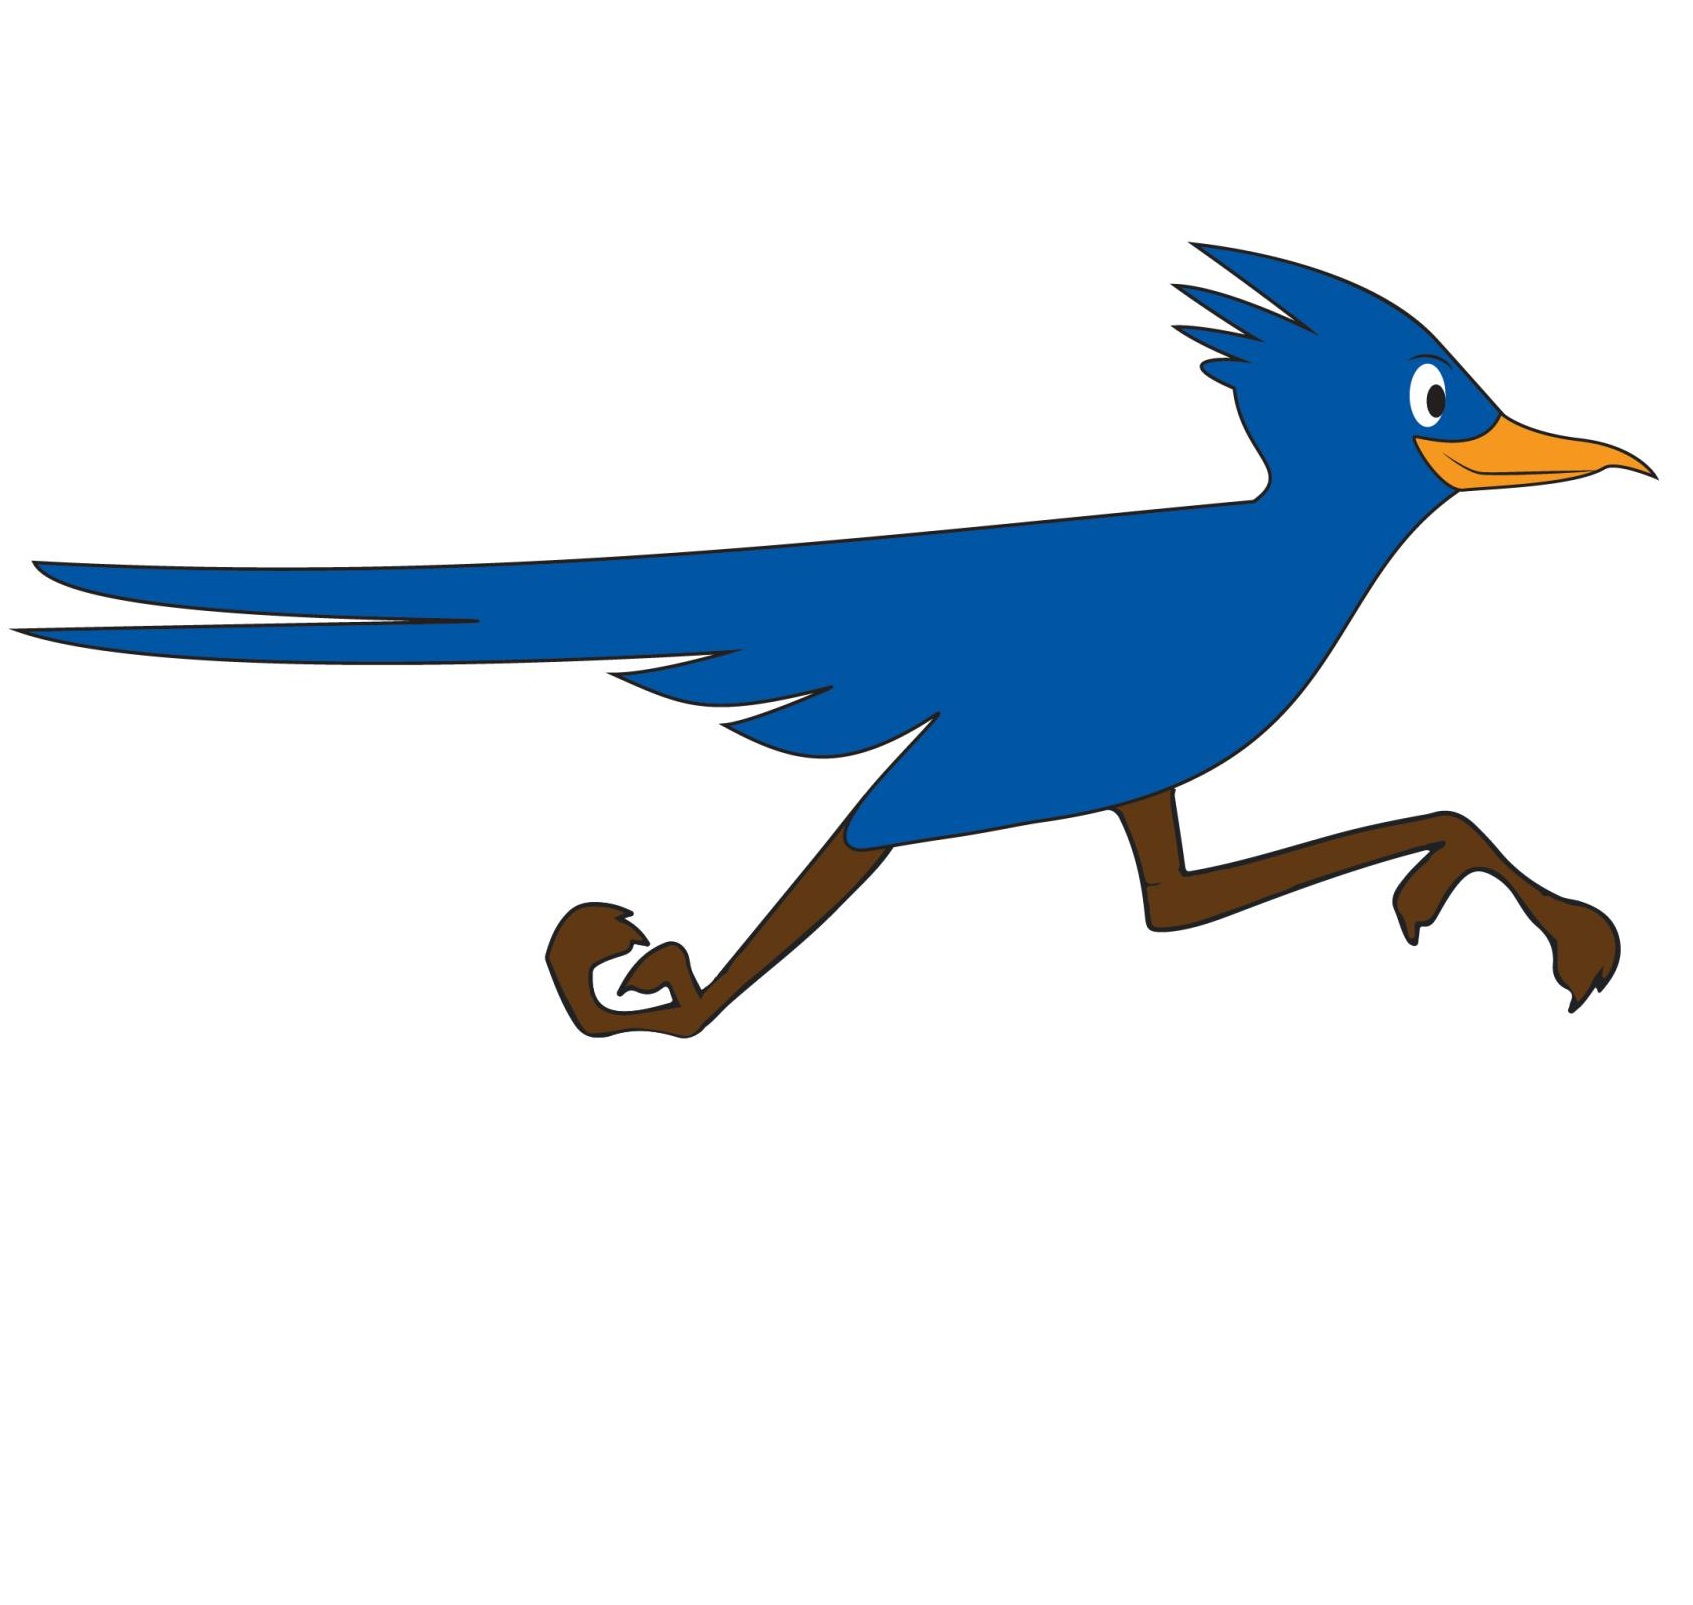 blue roadrunner logo